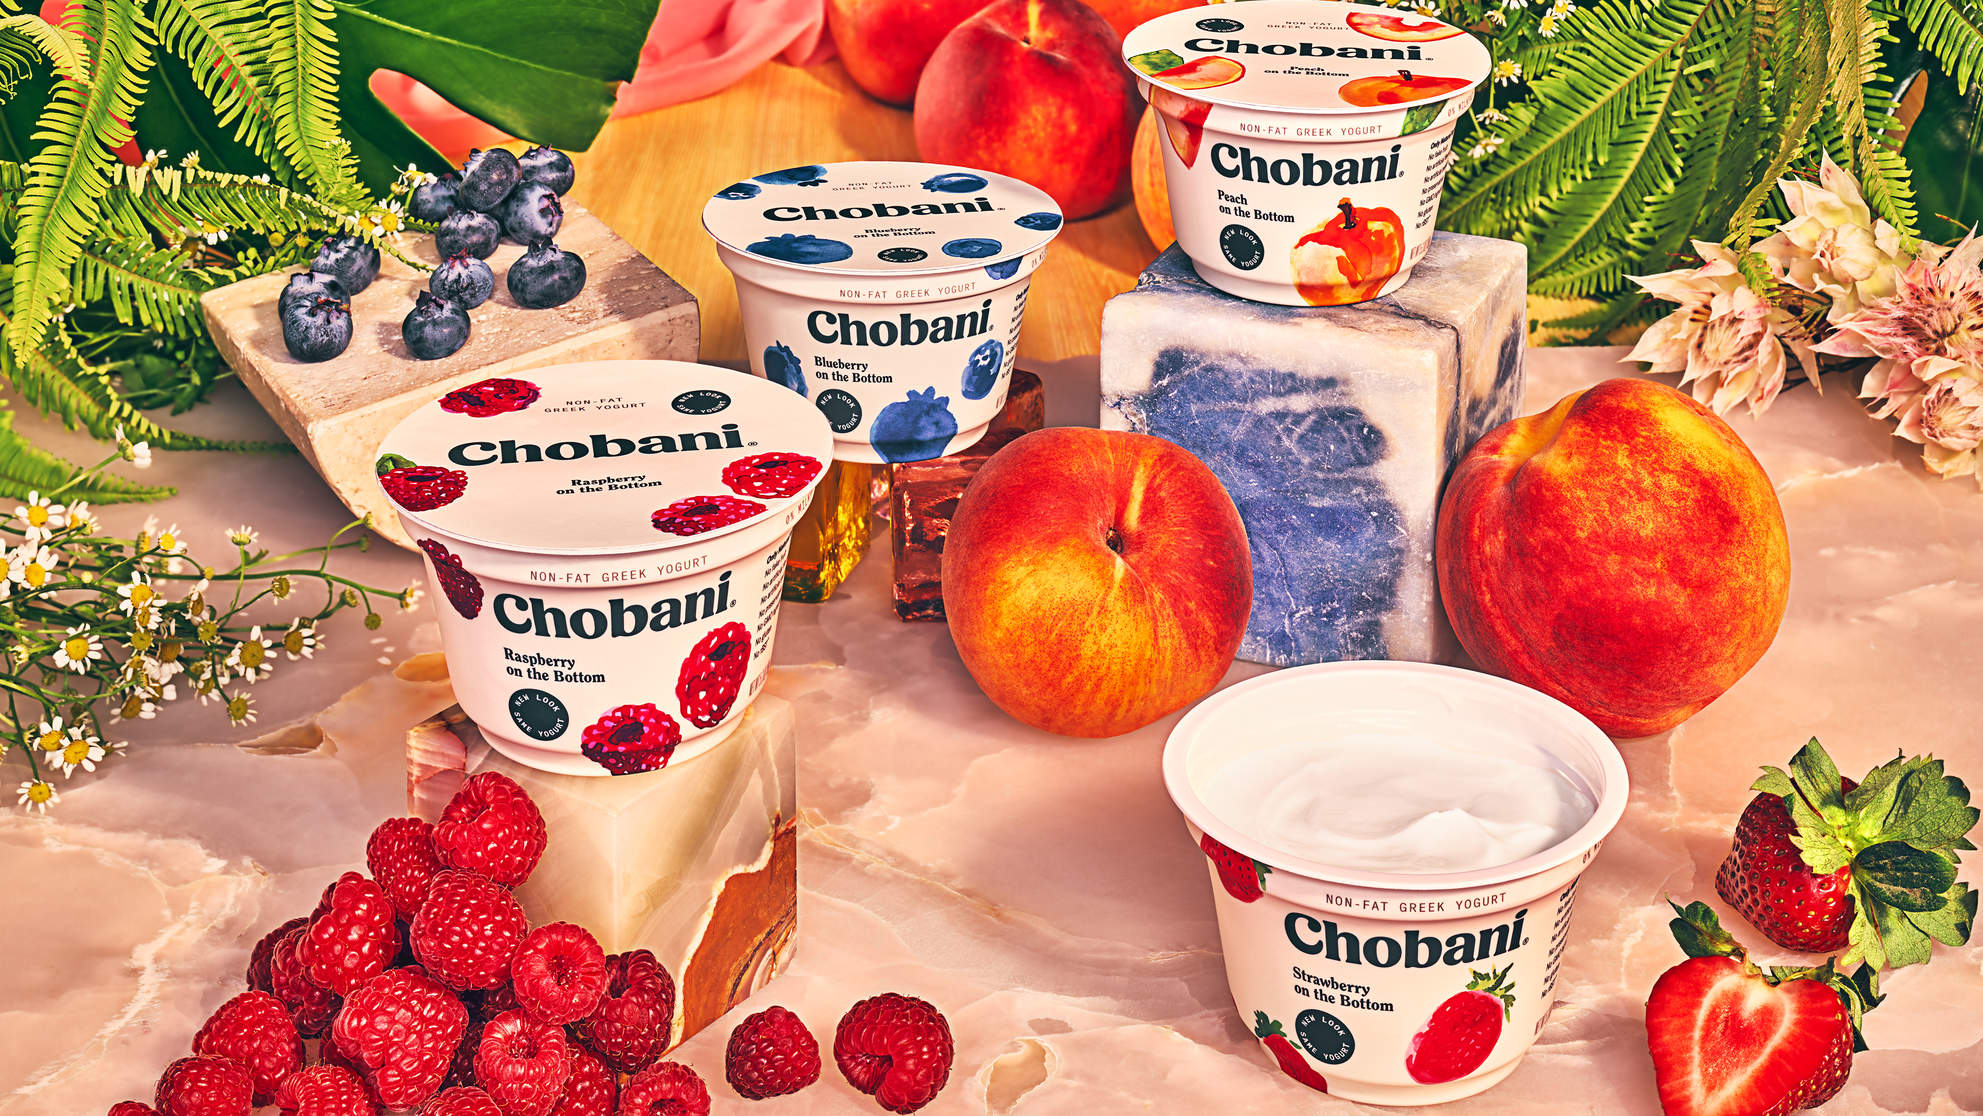 The Super Easy Way You Can Get a Free Chobani Yogurt This Month